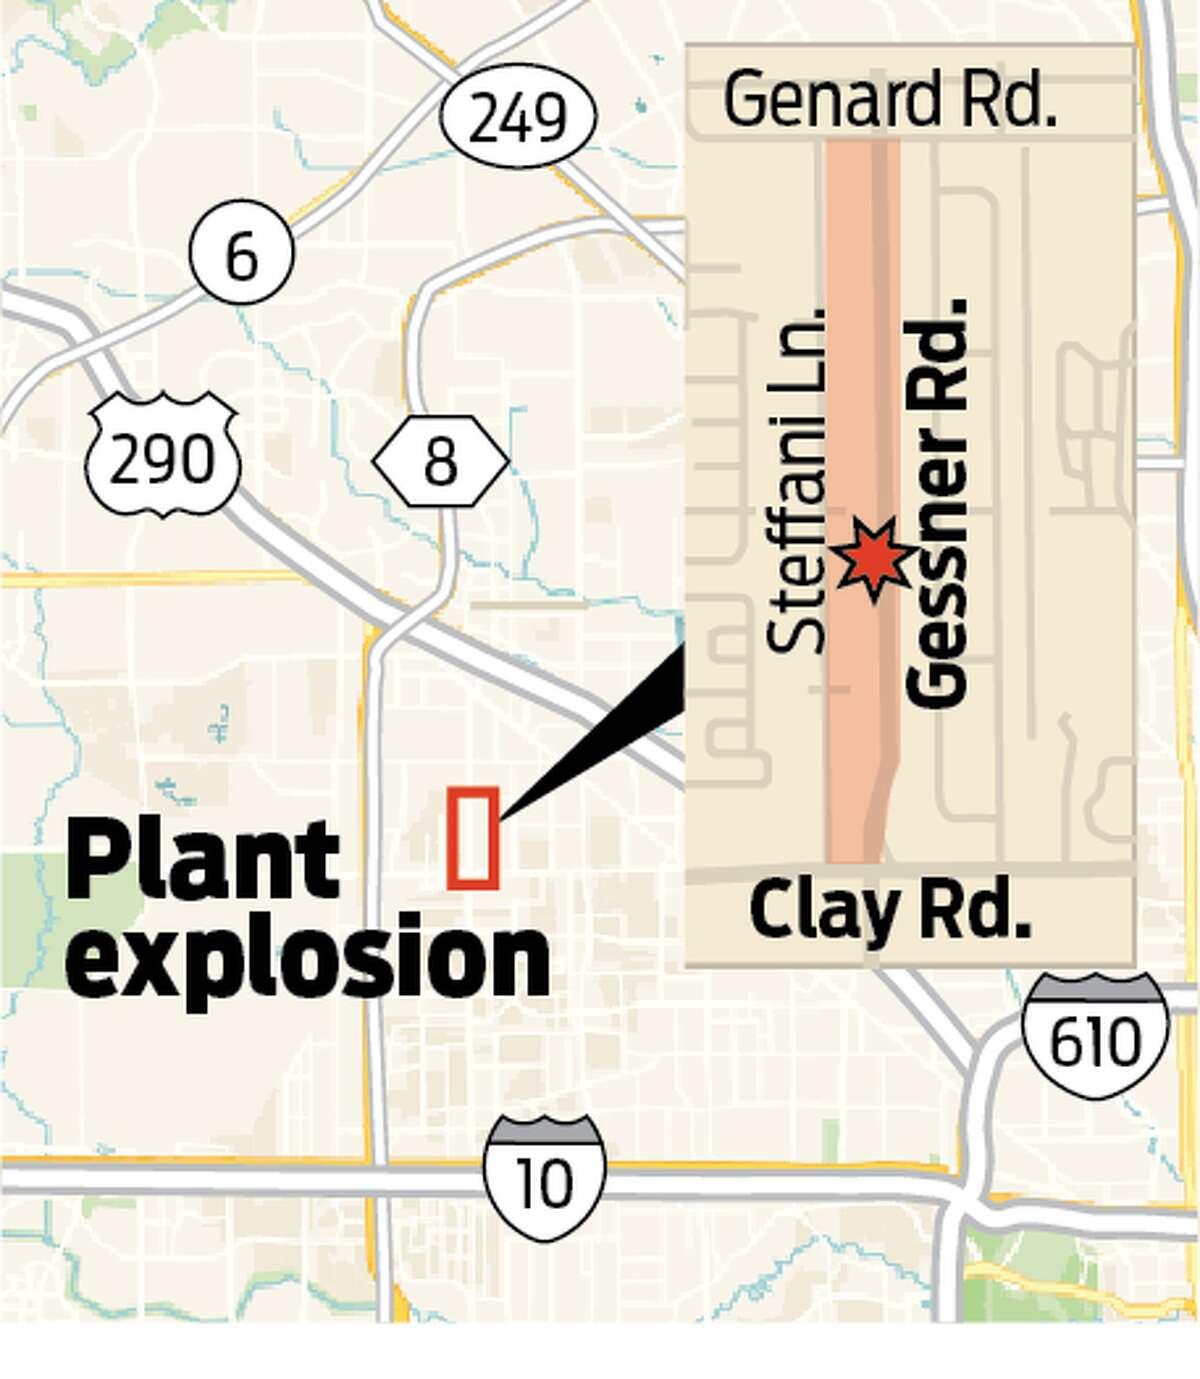 Houston authorities have identified that the explosion that rocked west Houston Friday morning occurred at Watson Grinding and Manufacturing, located at 4525 Gessner Rd. According to the company's website, the company provides provided machining, grinding, lapping & thermal spray coatings to customers. It claims to specializes in the turning and milling of exotic alloys, hard metals and large parts.